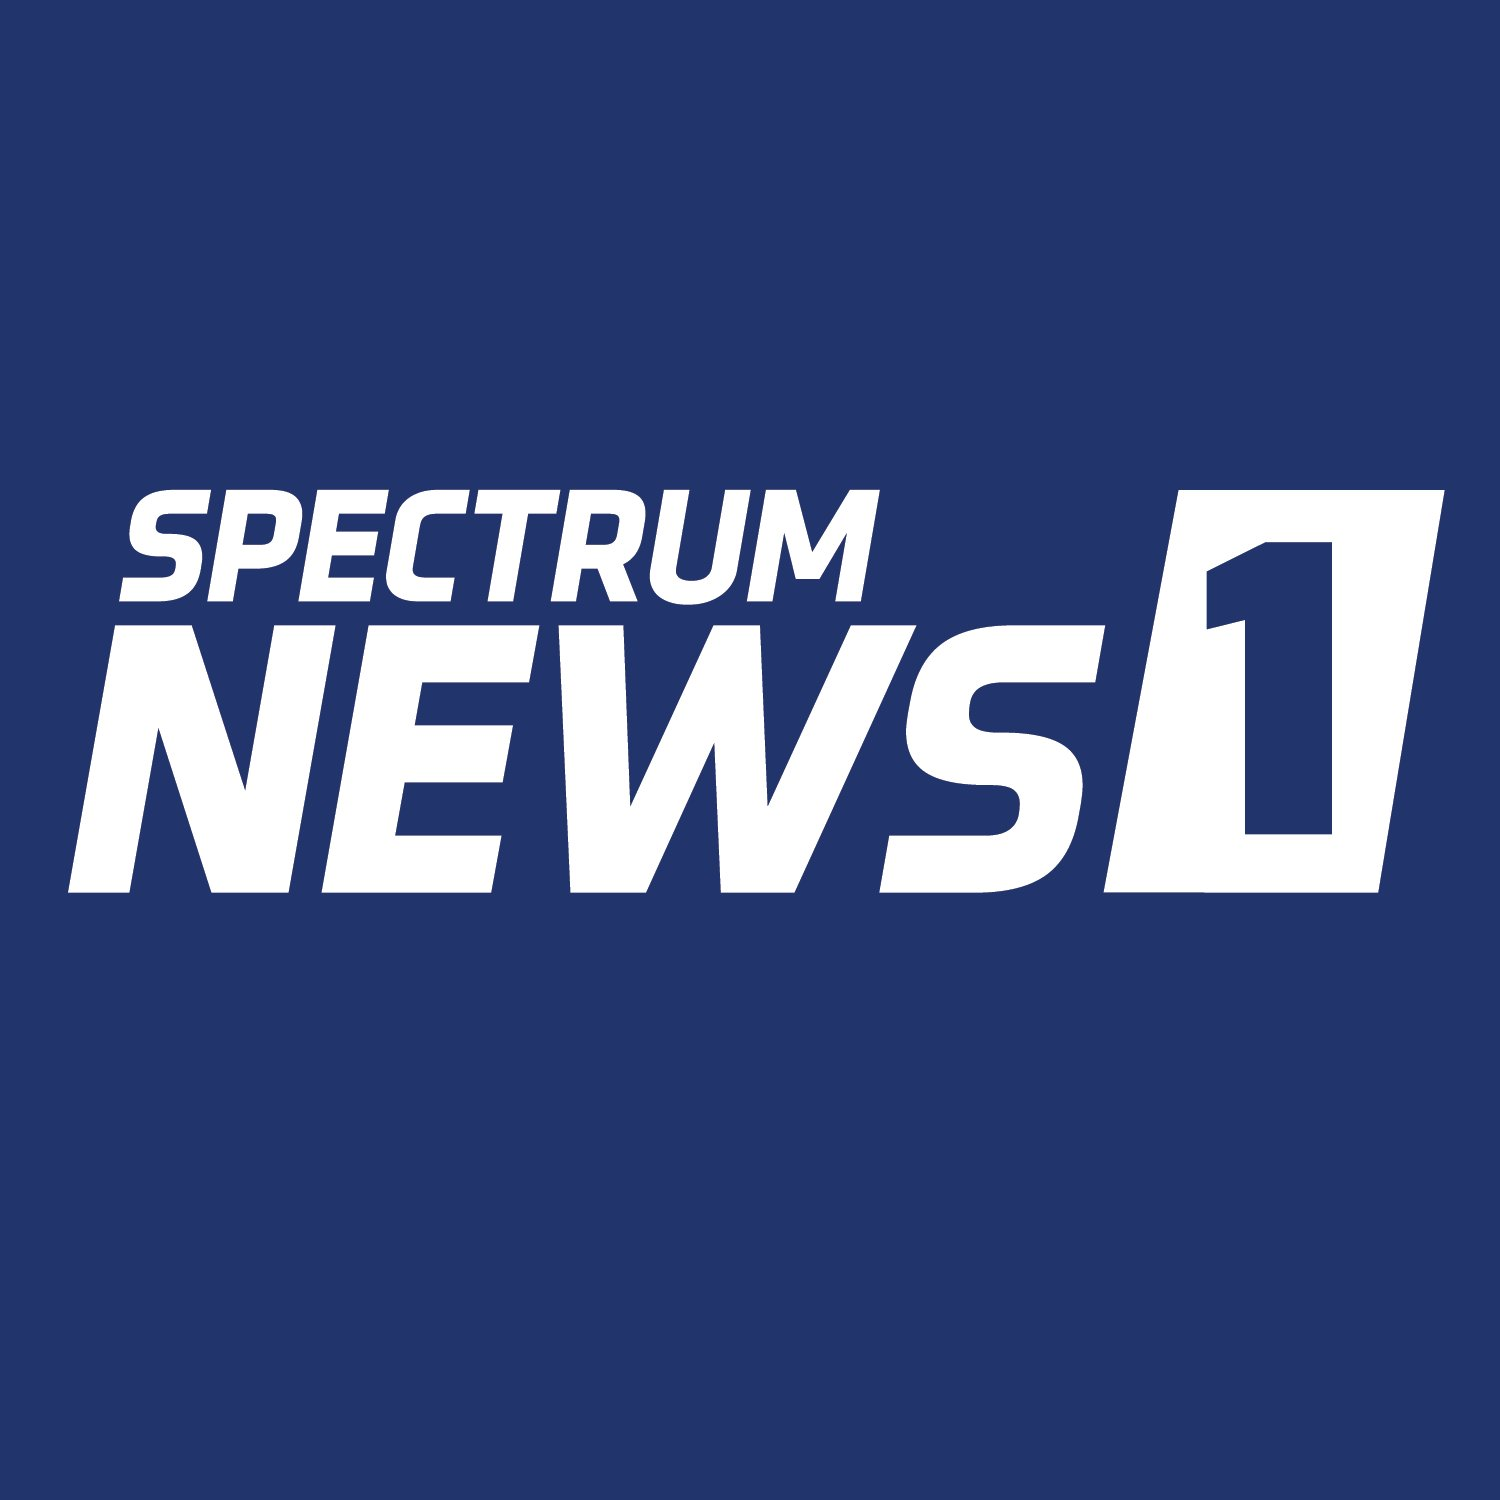 Spectrum News 1 OH (@SpectrumNews1OH) | Twitter